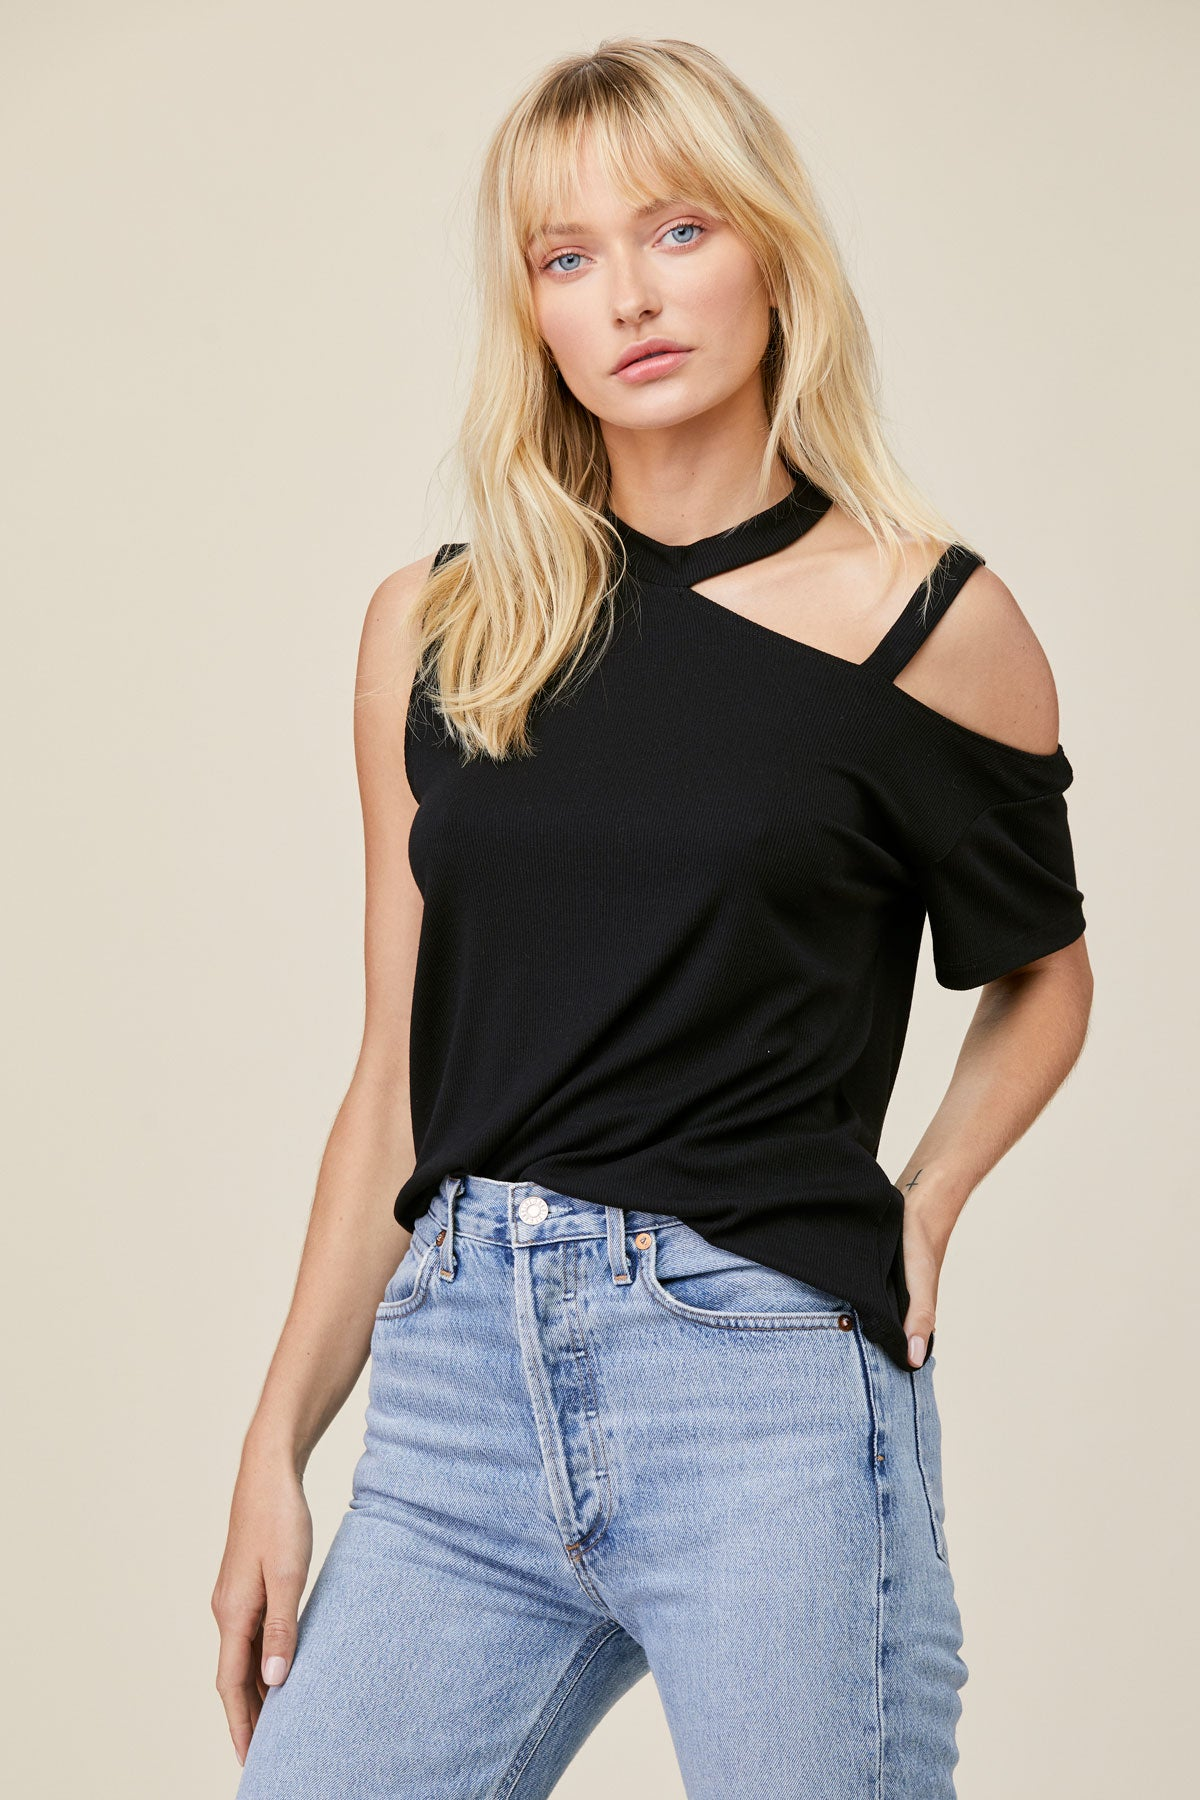 LNA Clothing Brantley Rib Cutout Top in Black